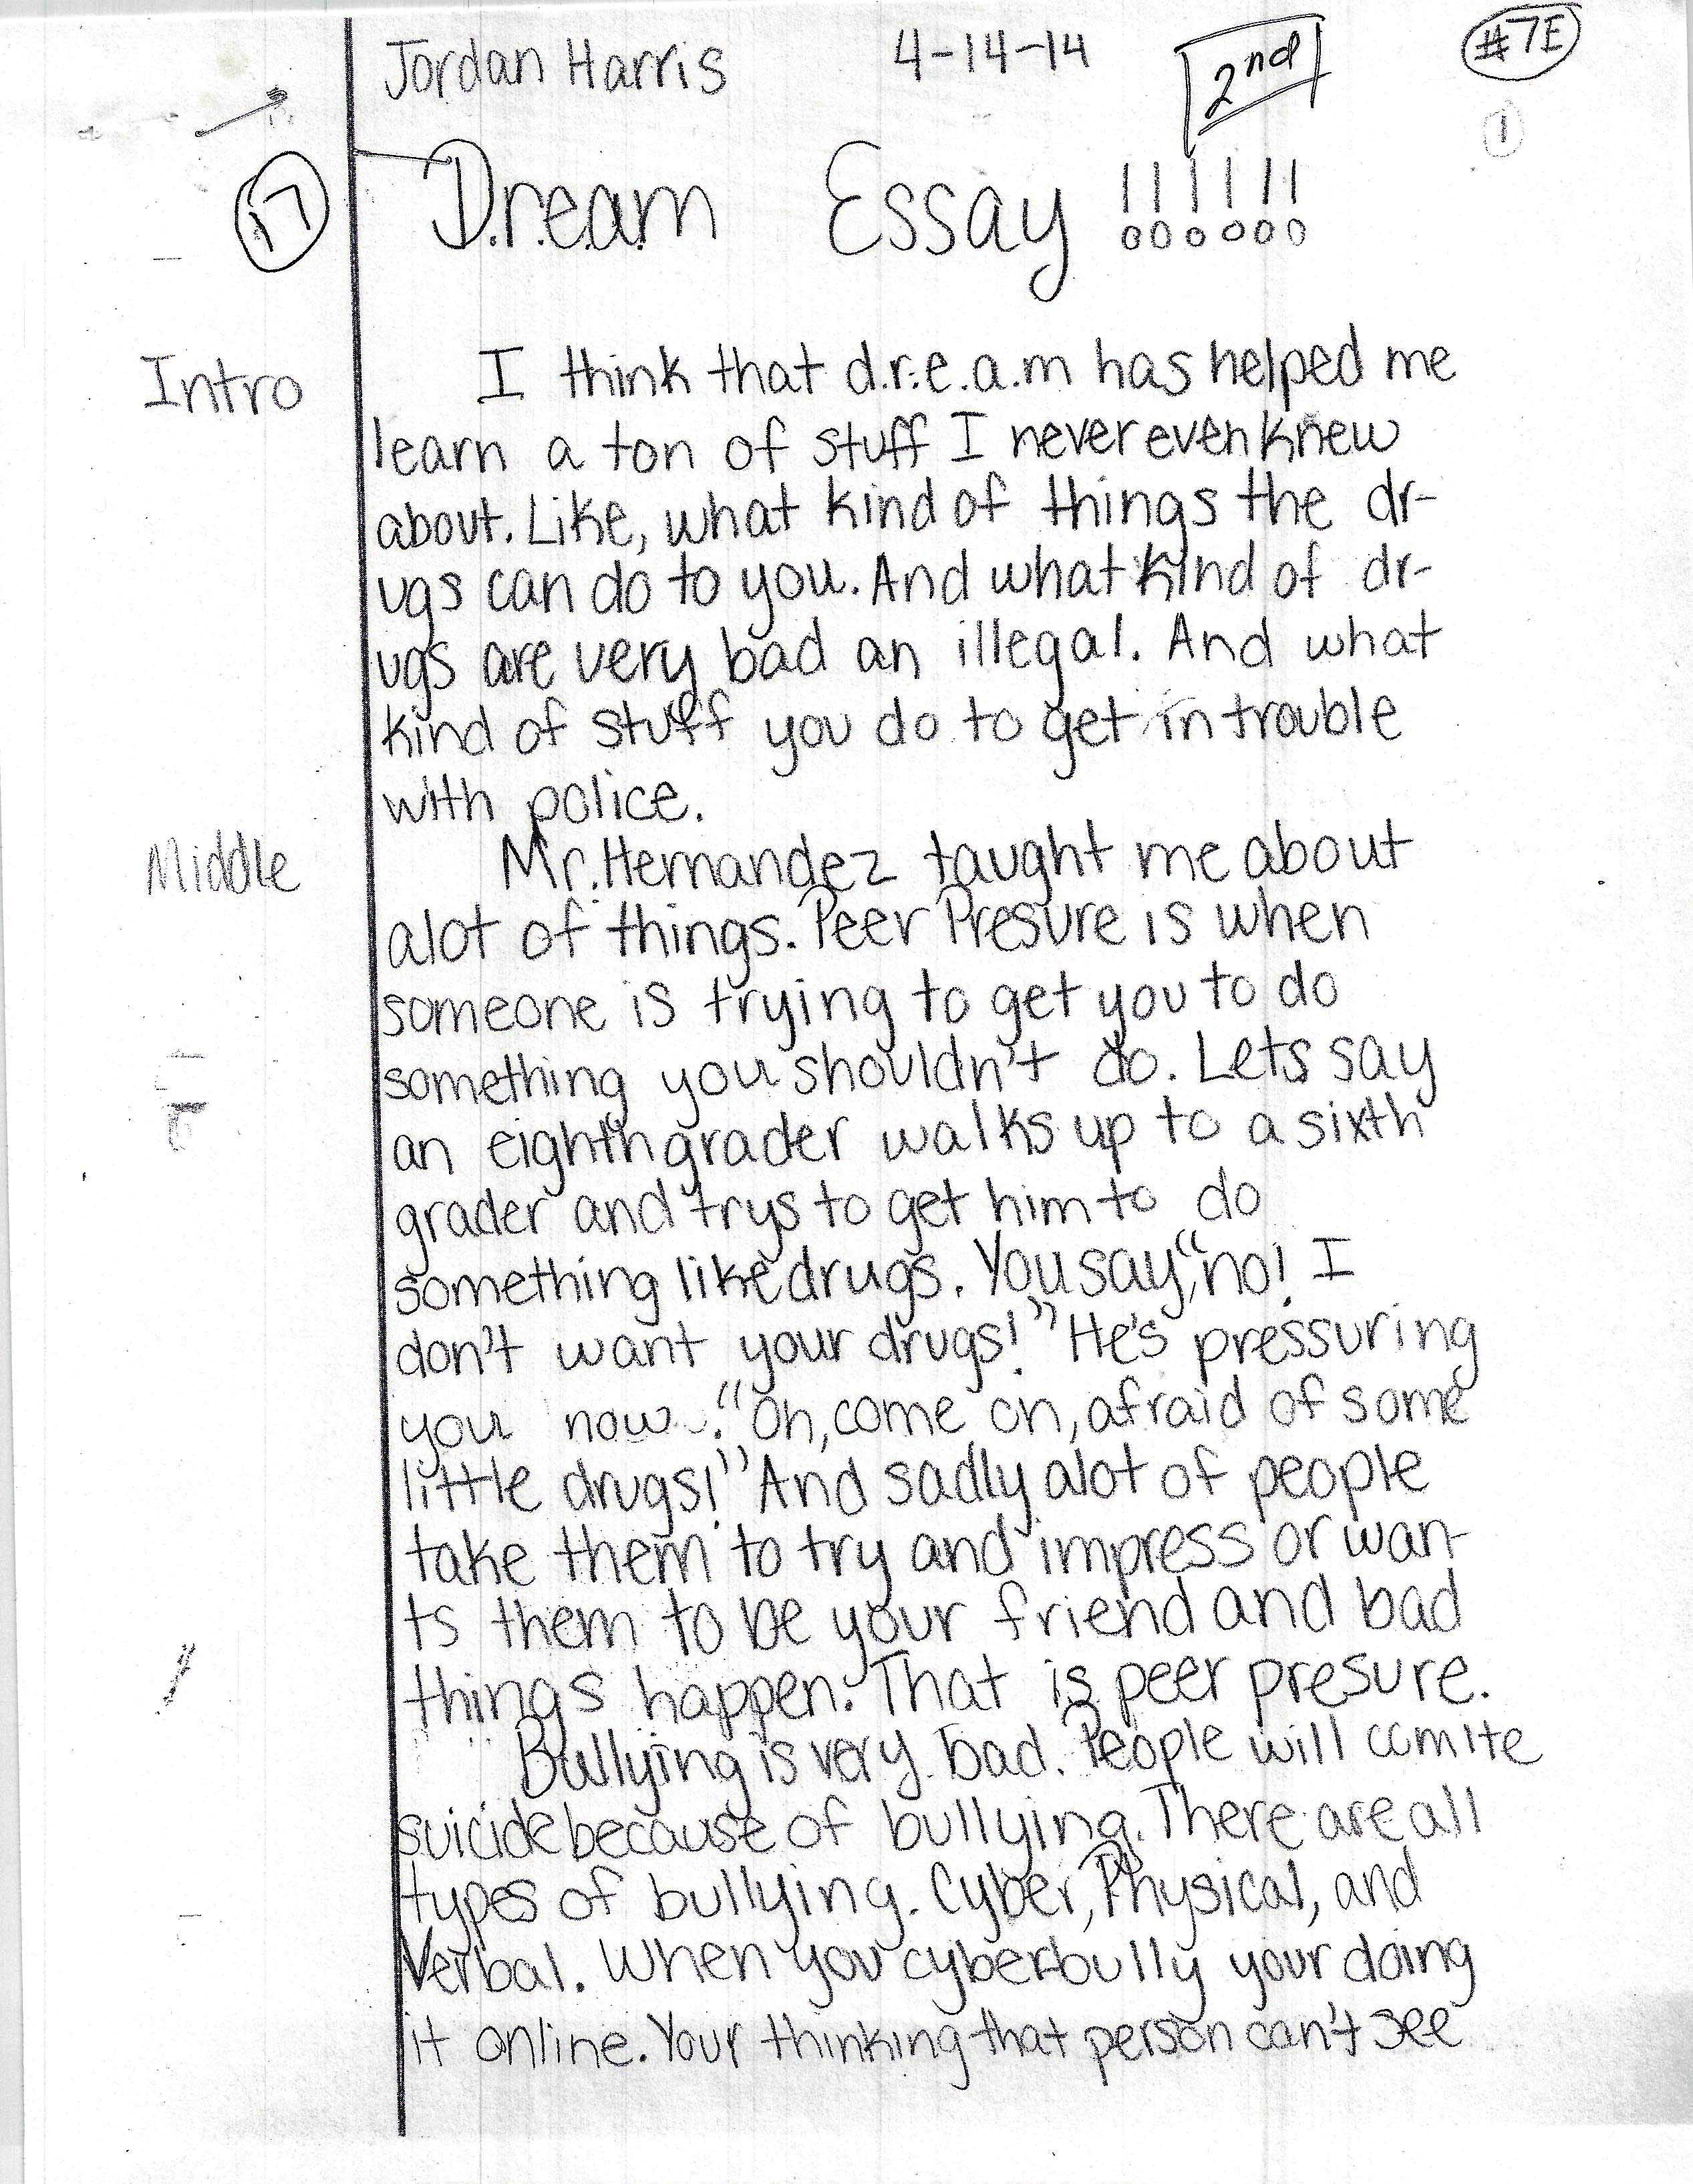 002 Essay On Bullying Example Harris Page1 Amazing The Cause And Effect In School Of Cyberbullying Full